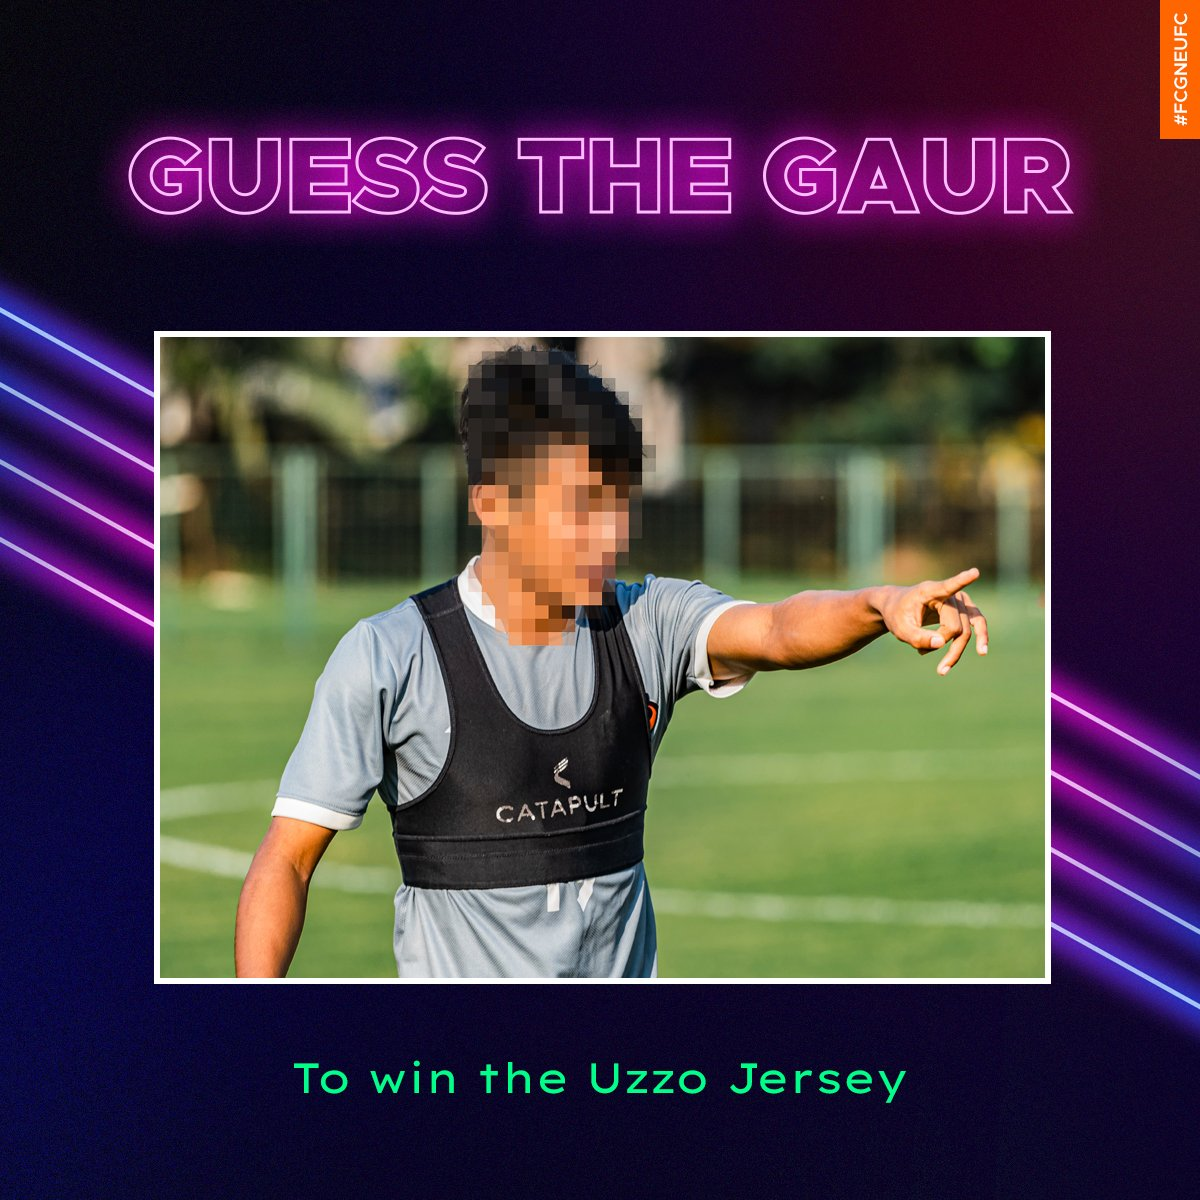 Contest time 🤩  Let's see who gets it right! 😉  #RiseAgain #FCGNEUFC